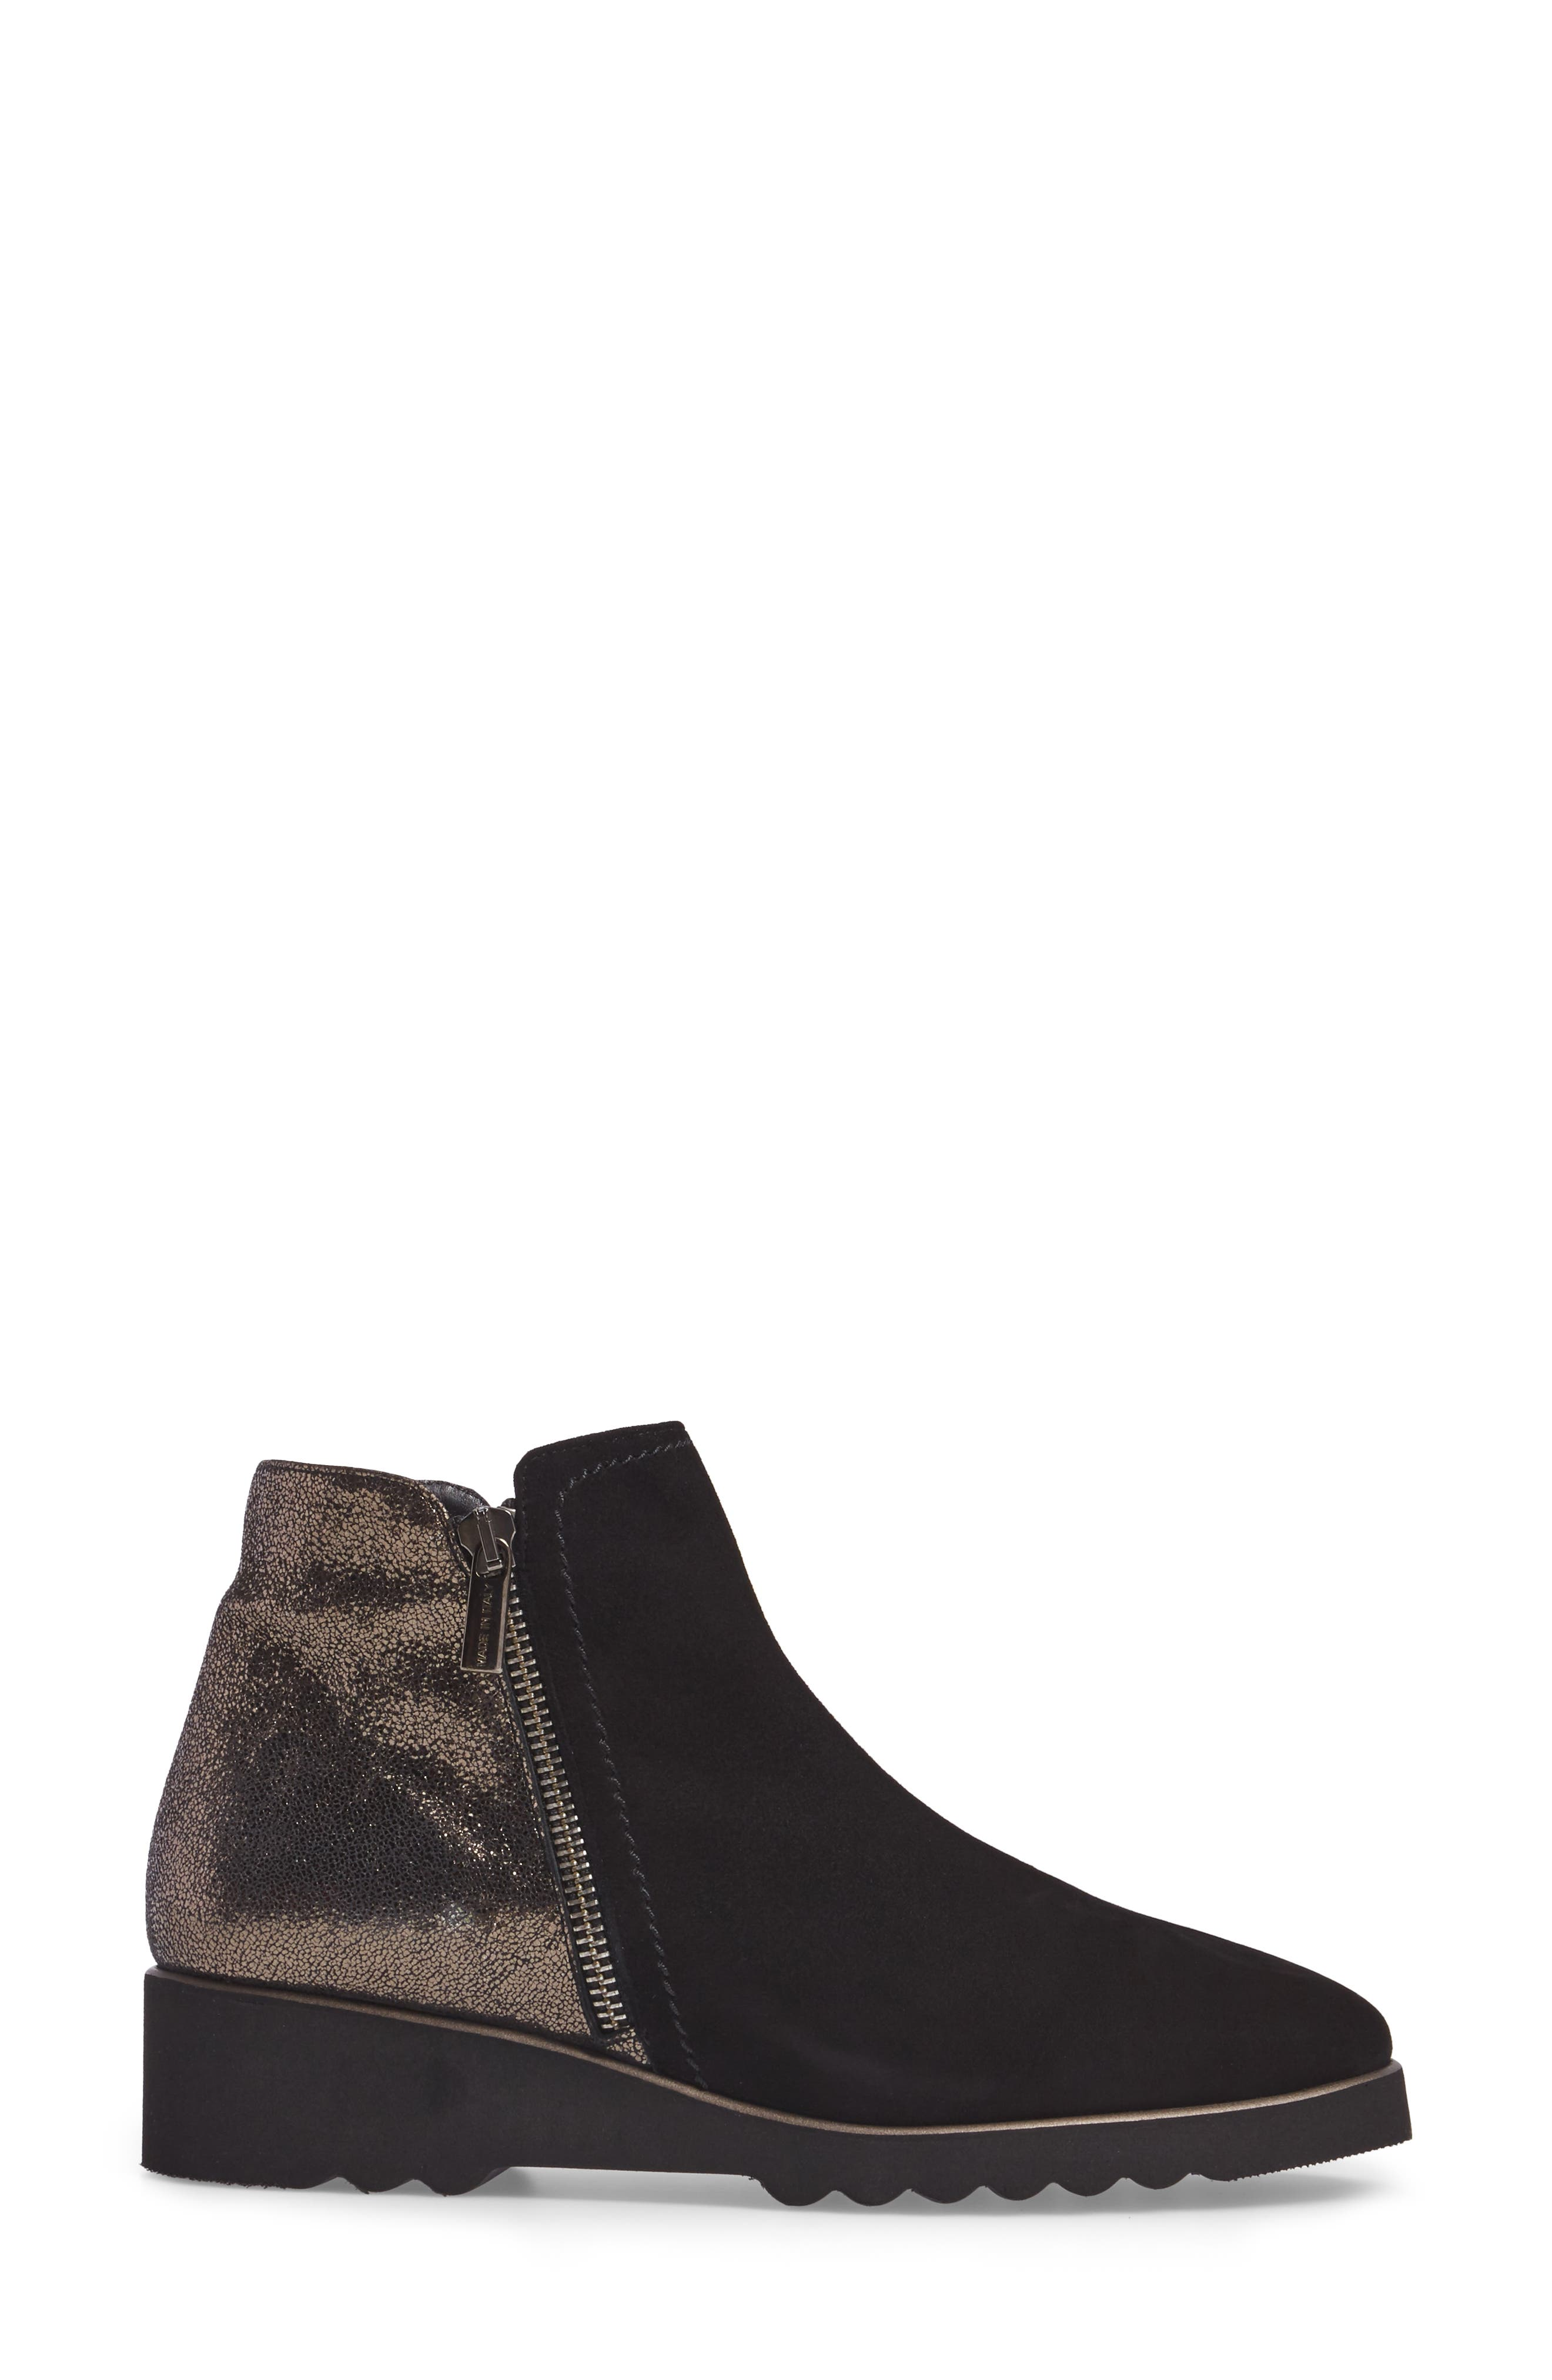 Addie Wedge Bootie,                             Alternate thumbnail 3, color,